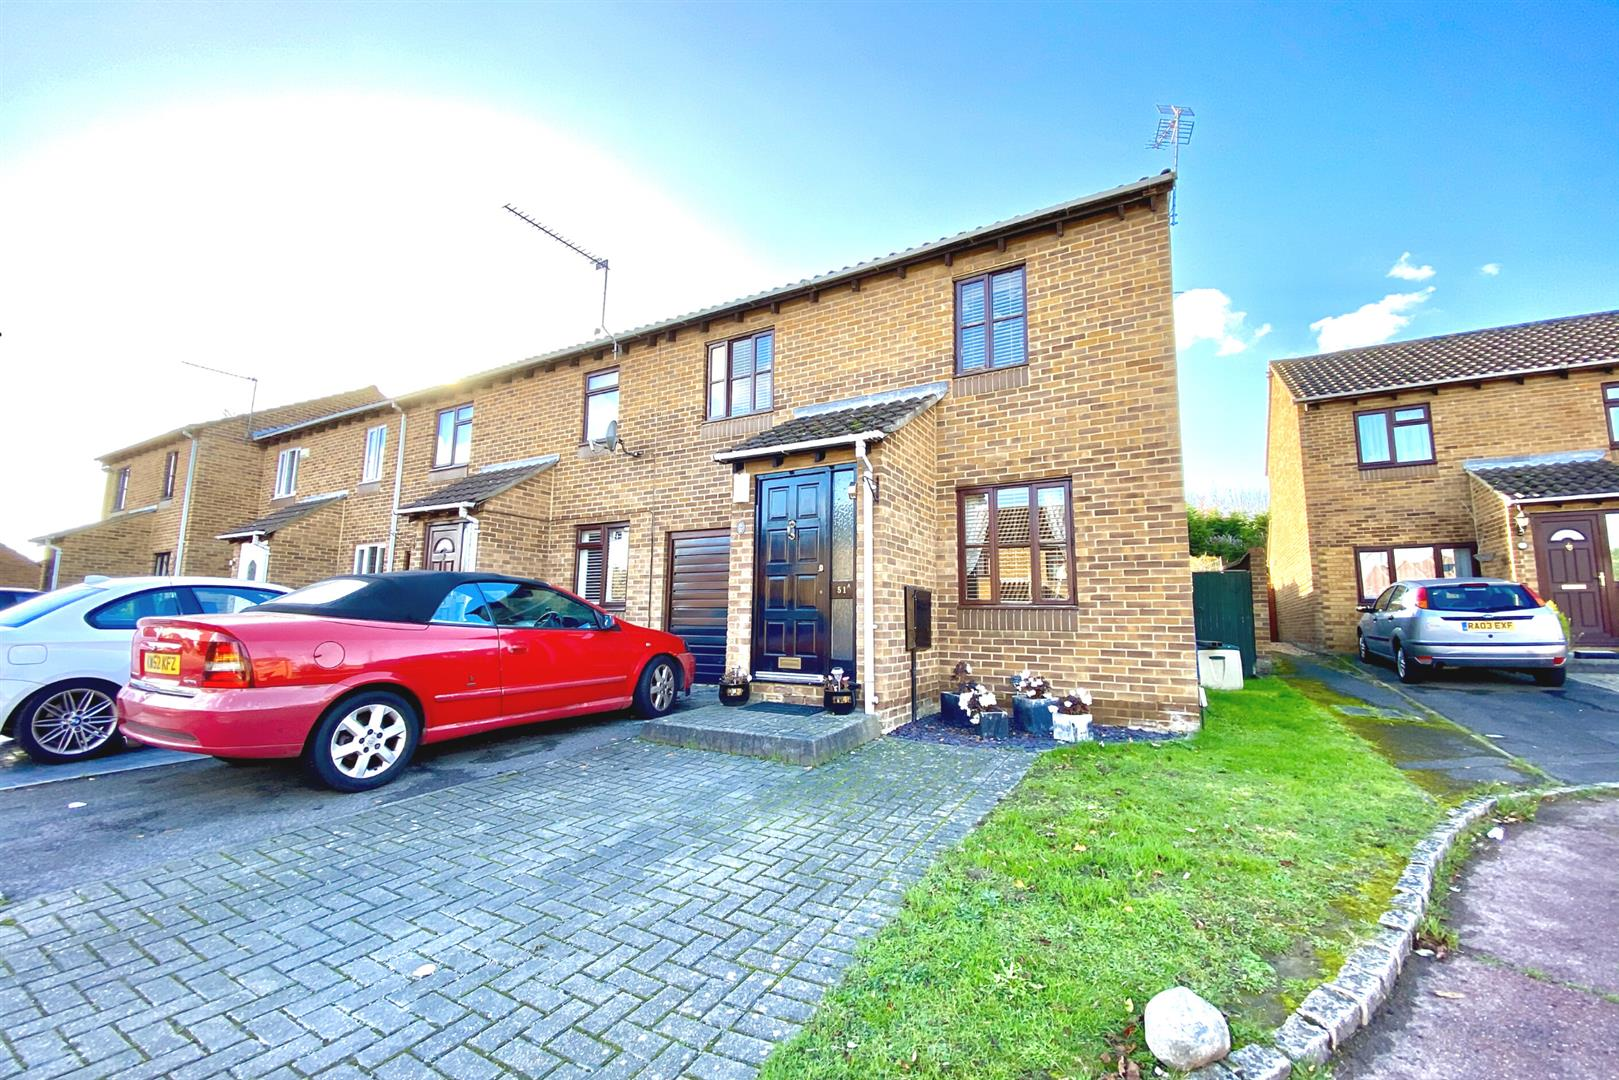 3 bed end of terrace for sale in Lower Earley, RG6